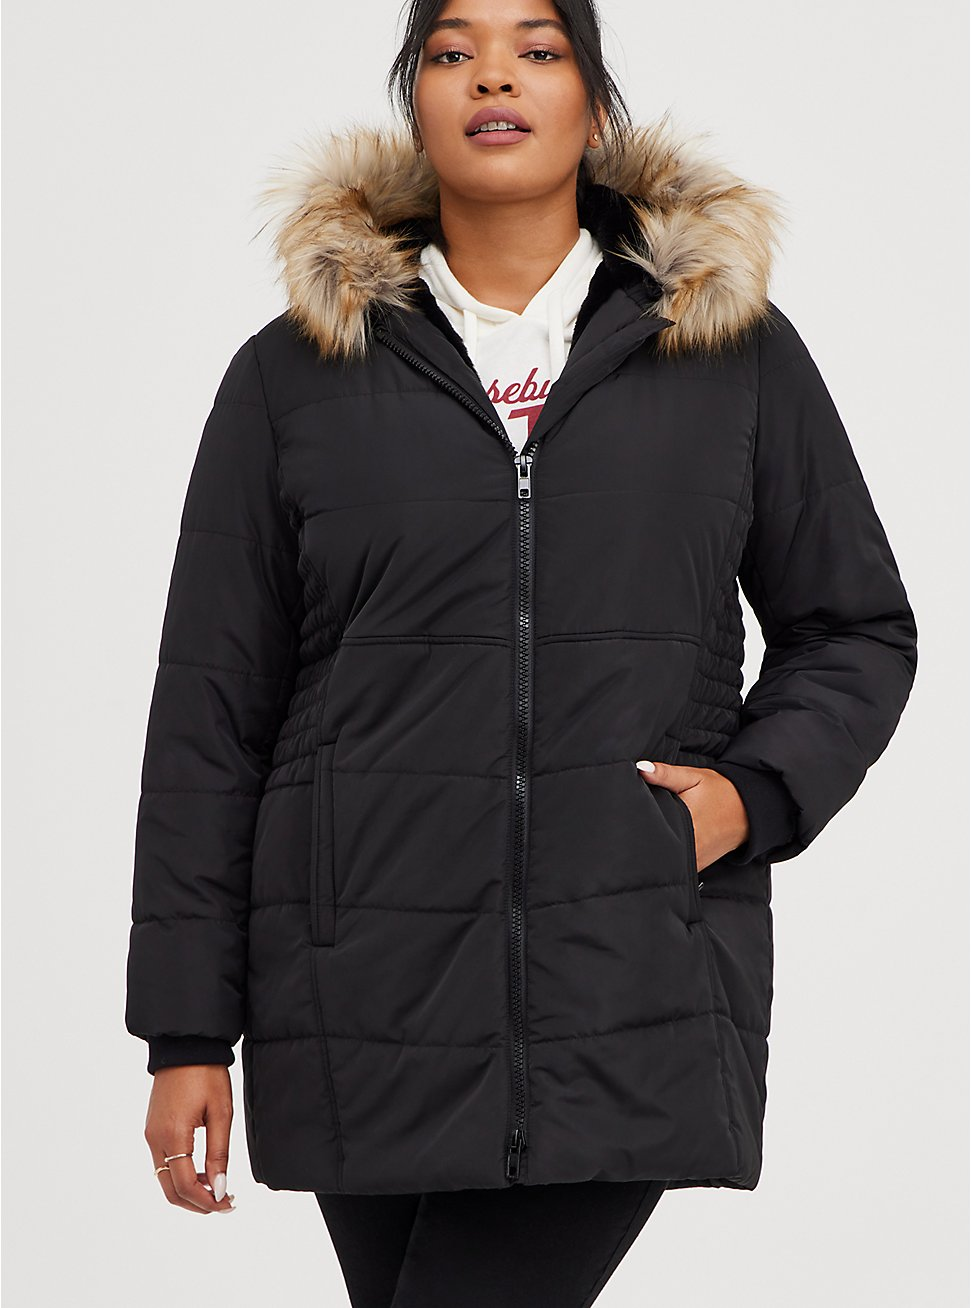 Black Faux Fur Trim Fit & Flare Puffer Coat, DEEP BLACK, hi-res